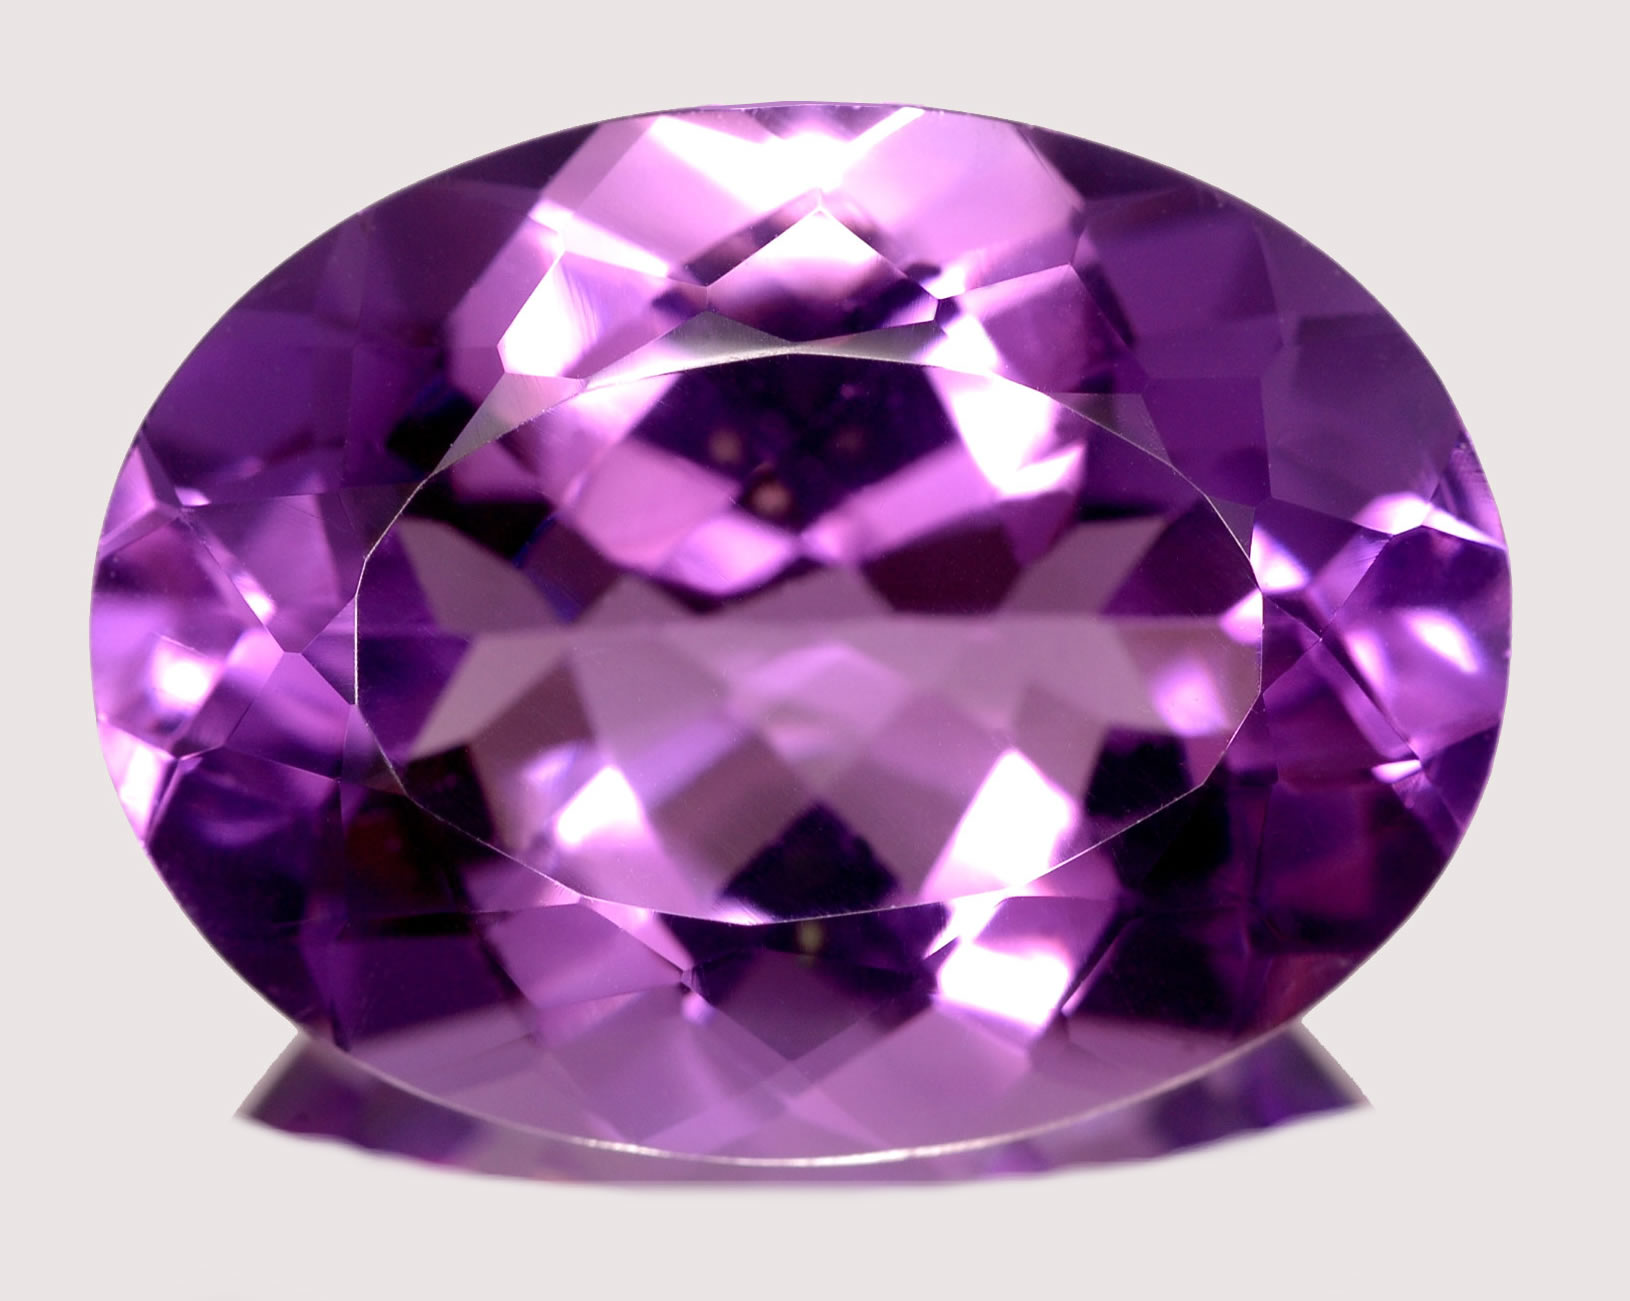 birthstones information images febuary birthstone amathyst